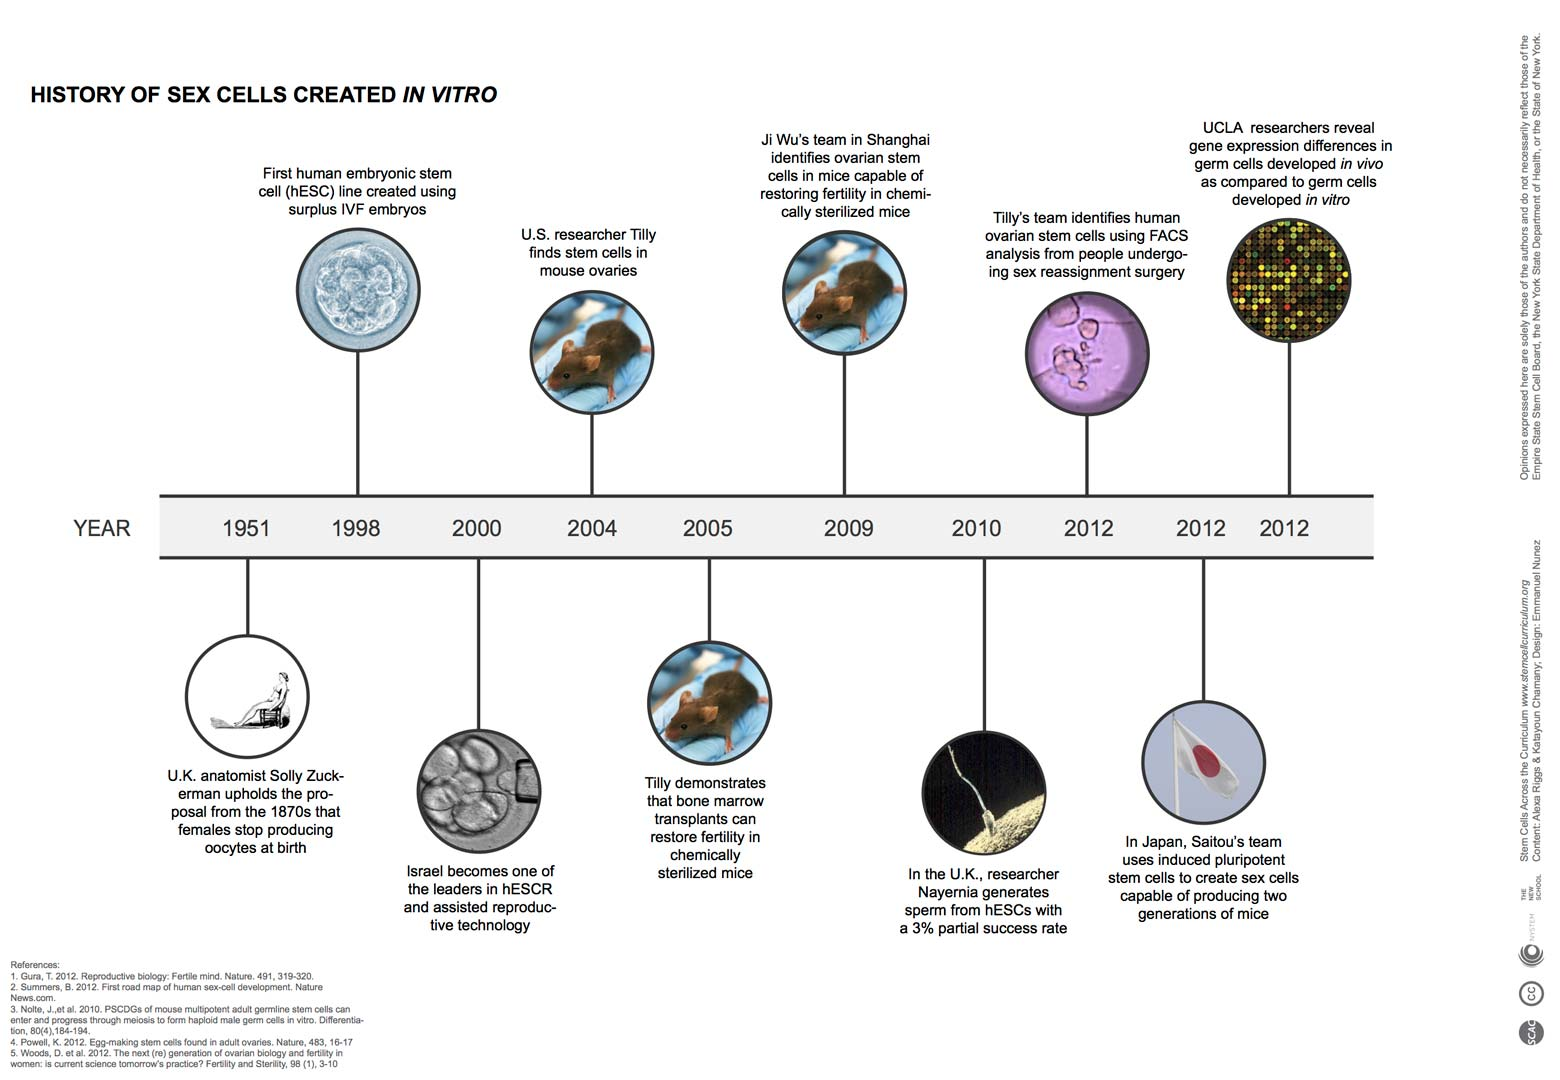 timeline of stem cell research Since 1981, when ucsf's gail martin, phd, co-discovered embryonic stem cells in mice and coined the term embryonic stem cell, ucsf has been a key player in the stem cell field the success in 1998 by the university of wisconsin's james thomson in deriving human embryonic stem cells from embryos propelled the stem cell research field.